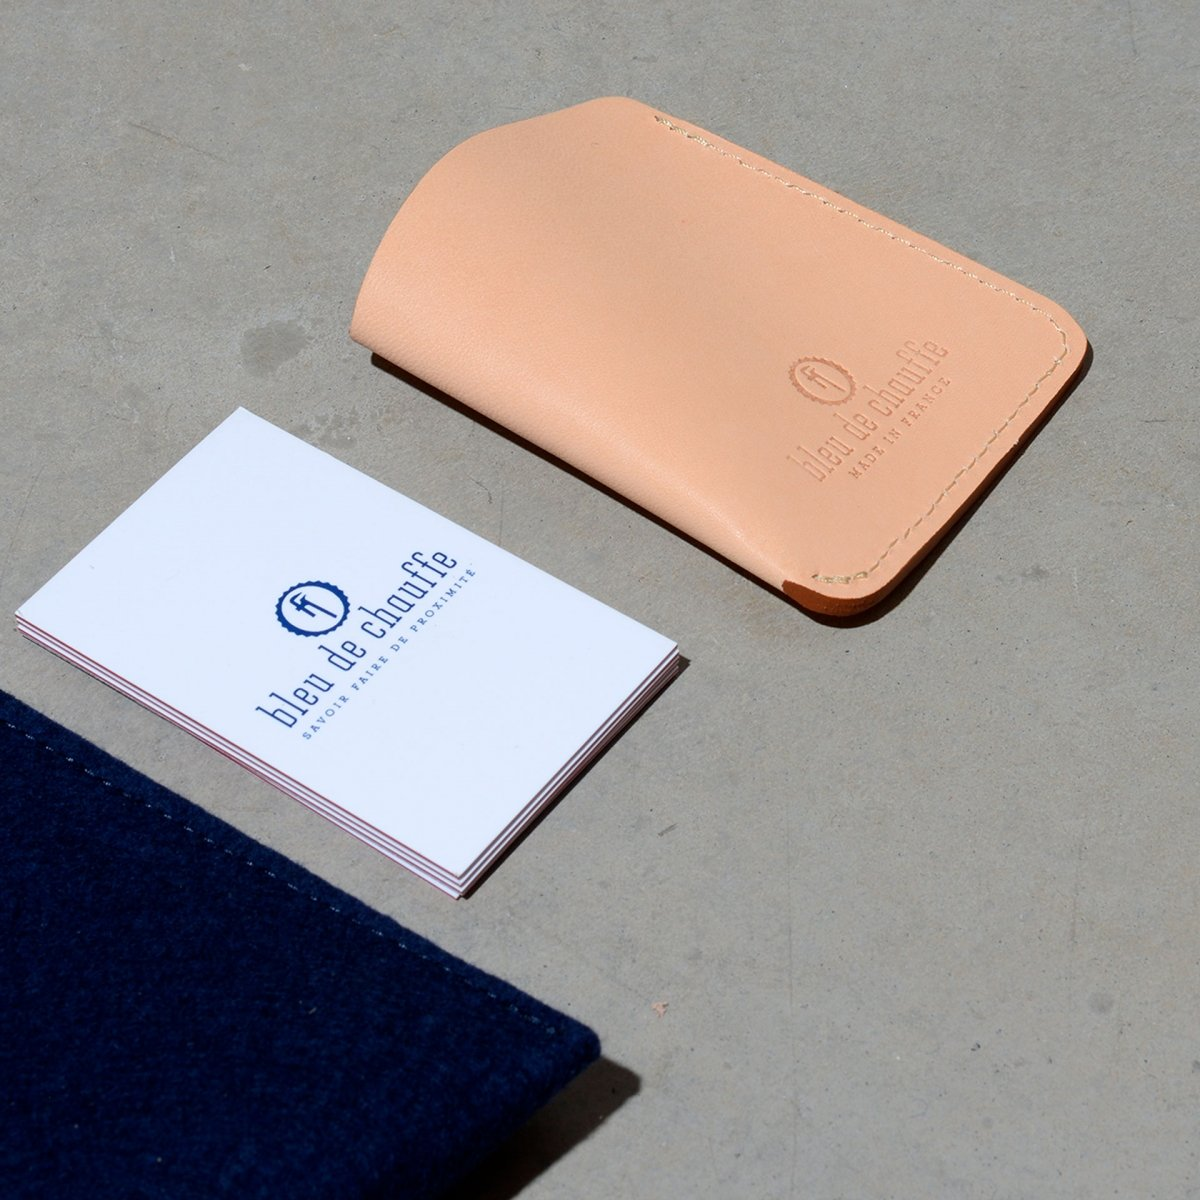 Intro business card holder - Natural (image n°4)